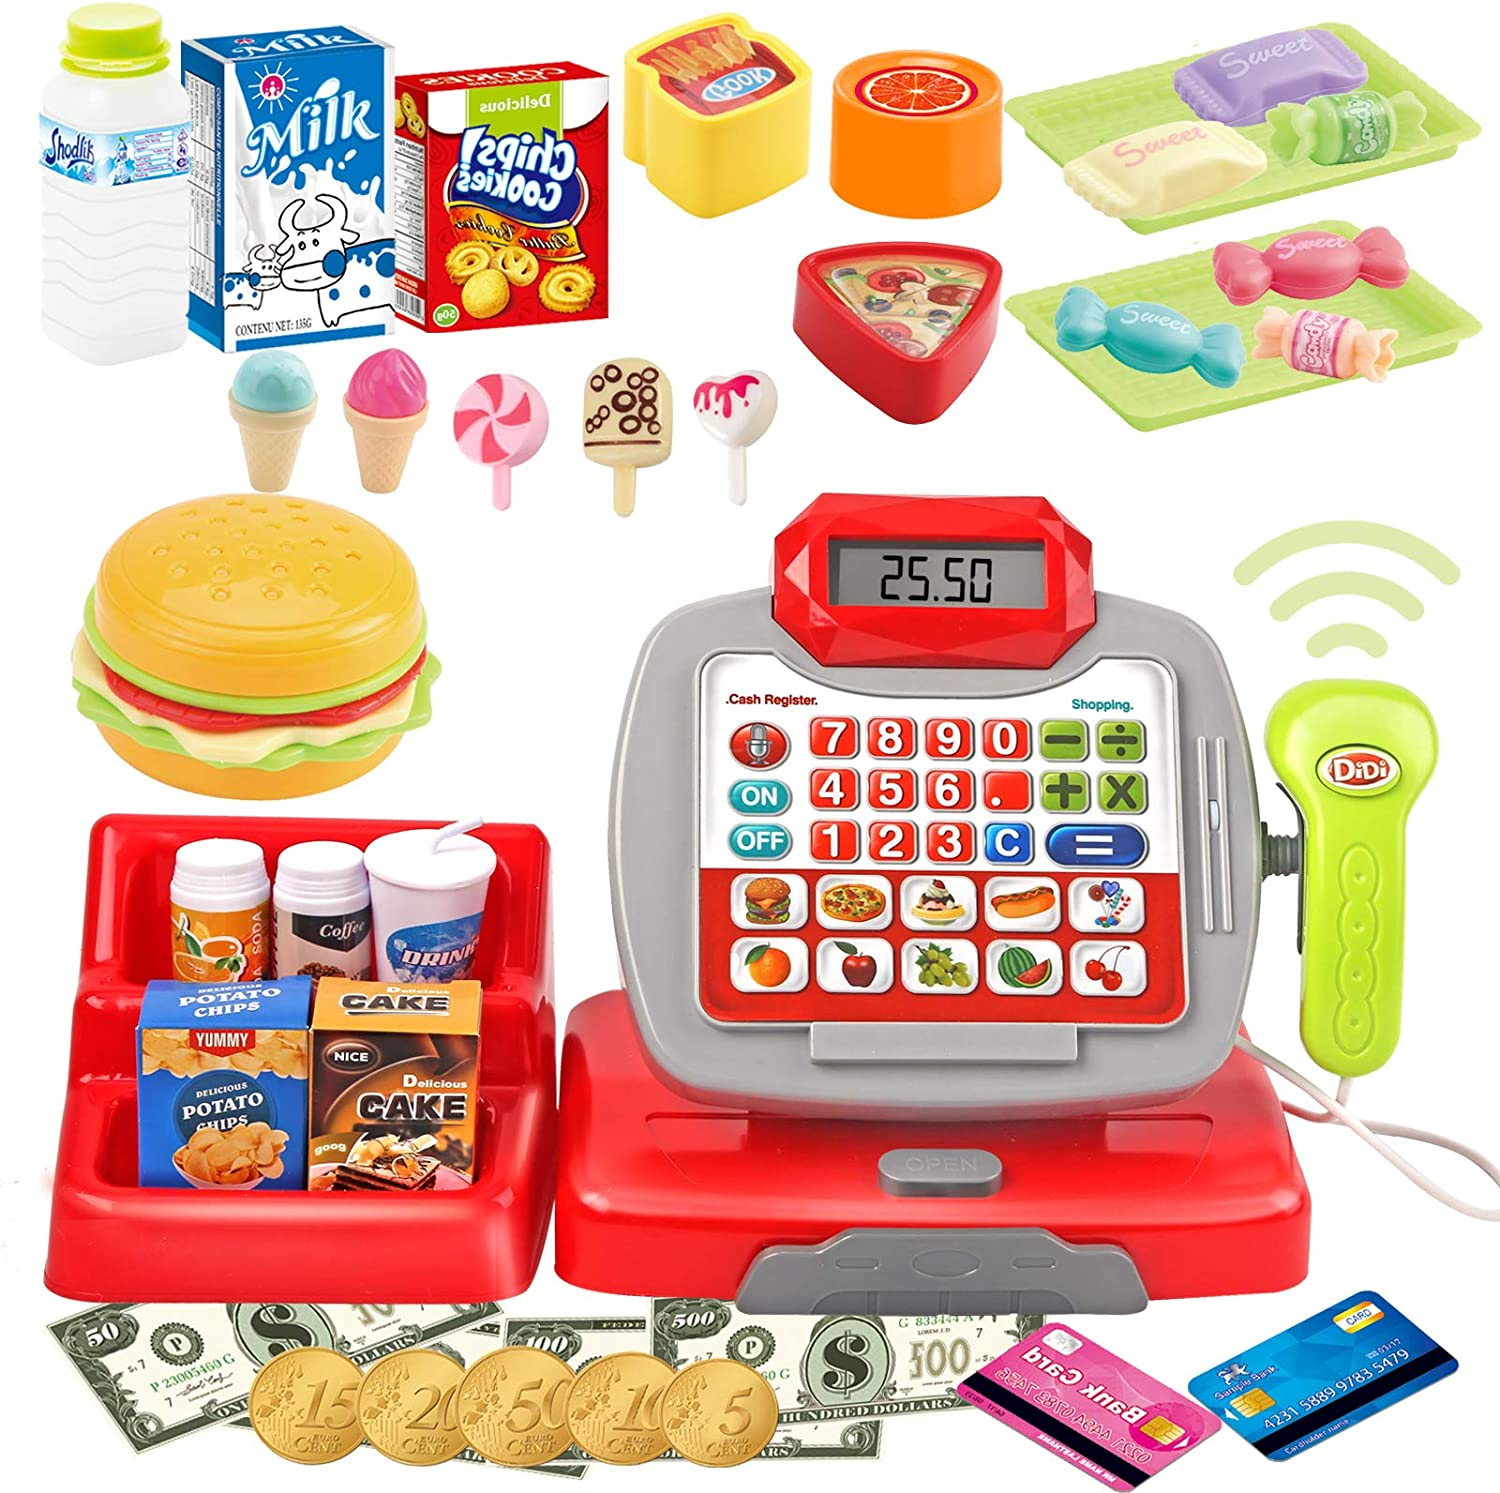 Voccim Toy Cash Register for Kids - Pretend Play Supermarket Cashier Toy with Scanner, Calculator, Credit Card, Money, Play Food and Grocery Toys, Learning Interactive Toys for Boys Girls